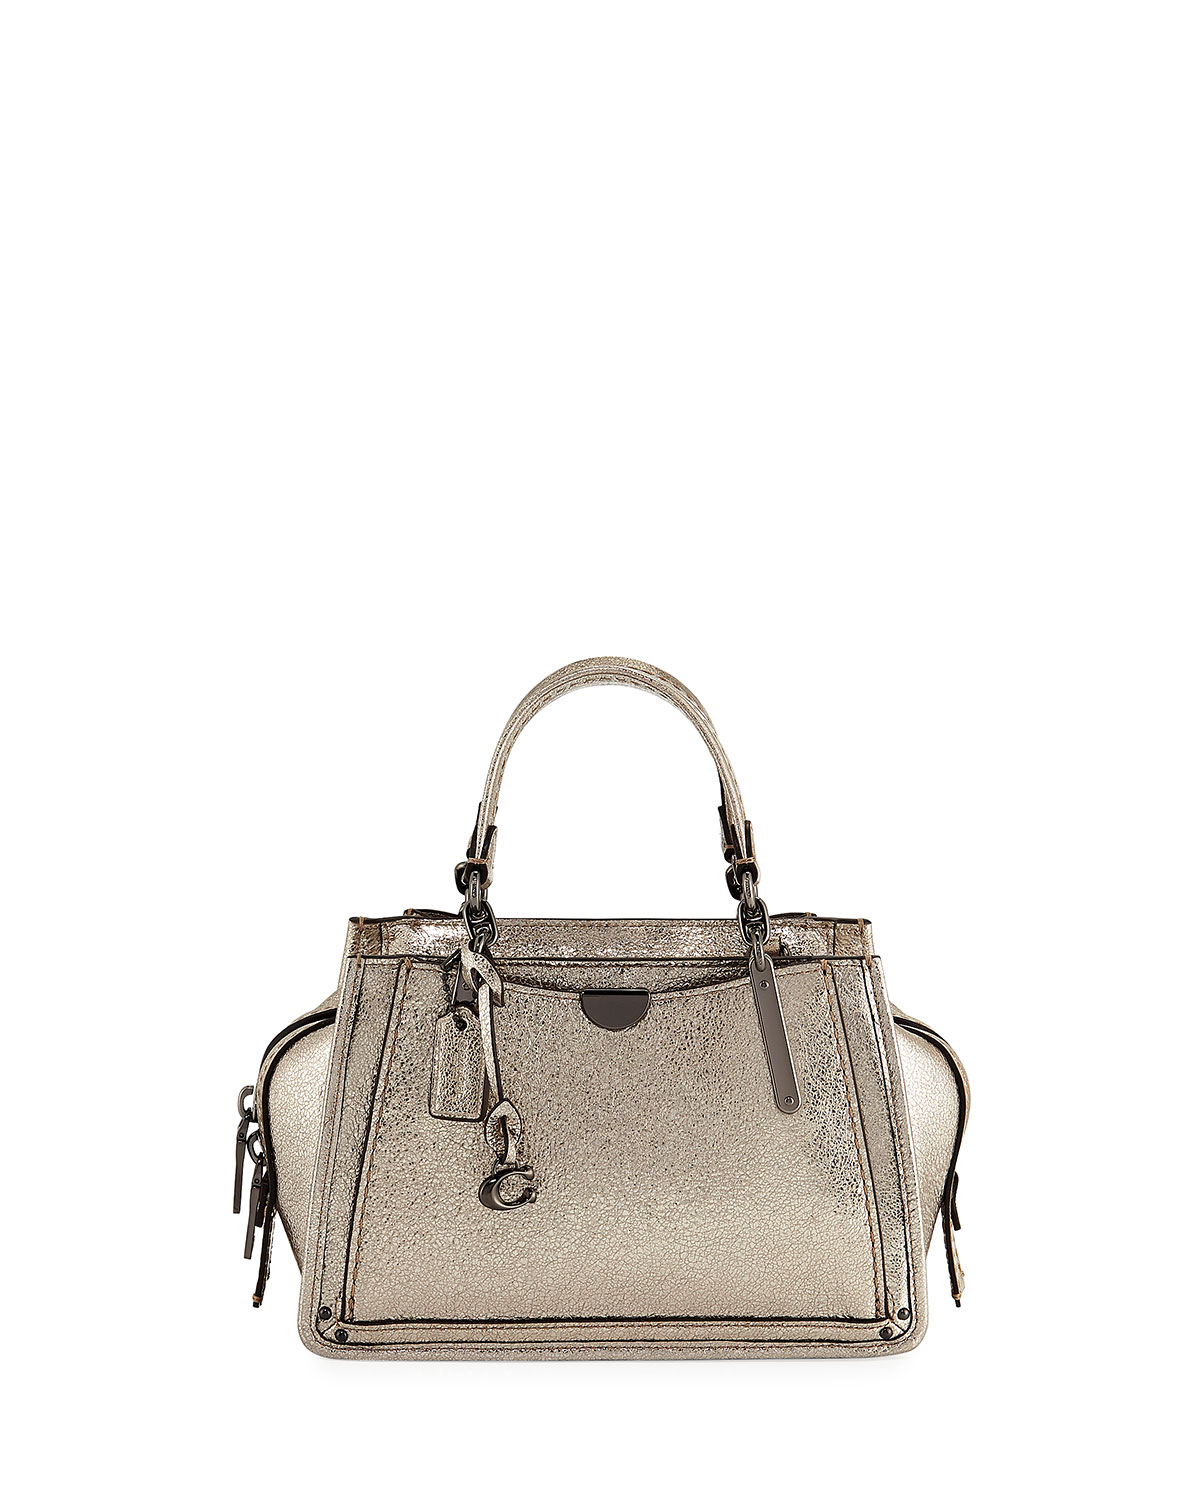 Coach 1941 Dreamer 21 Metallic Tote Bag  beb692597237e